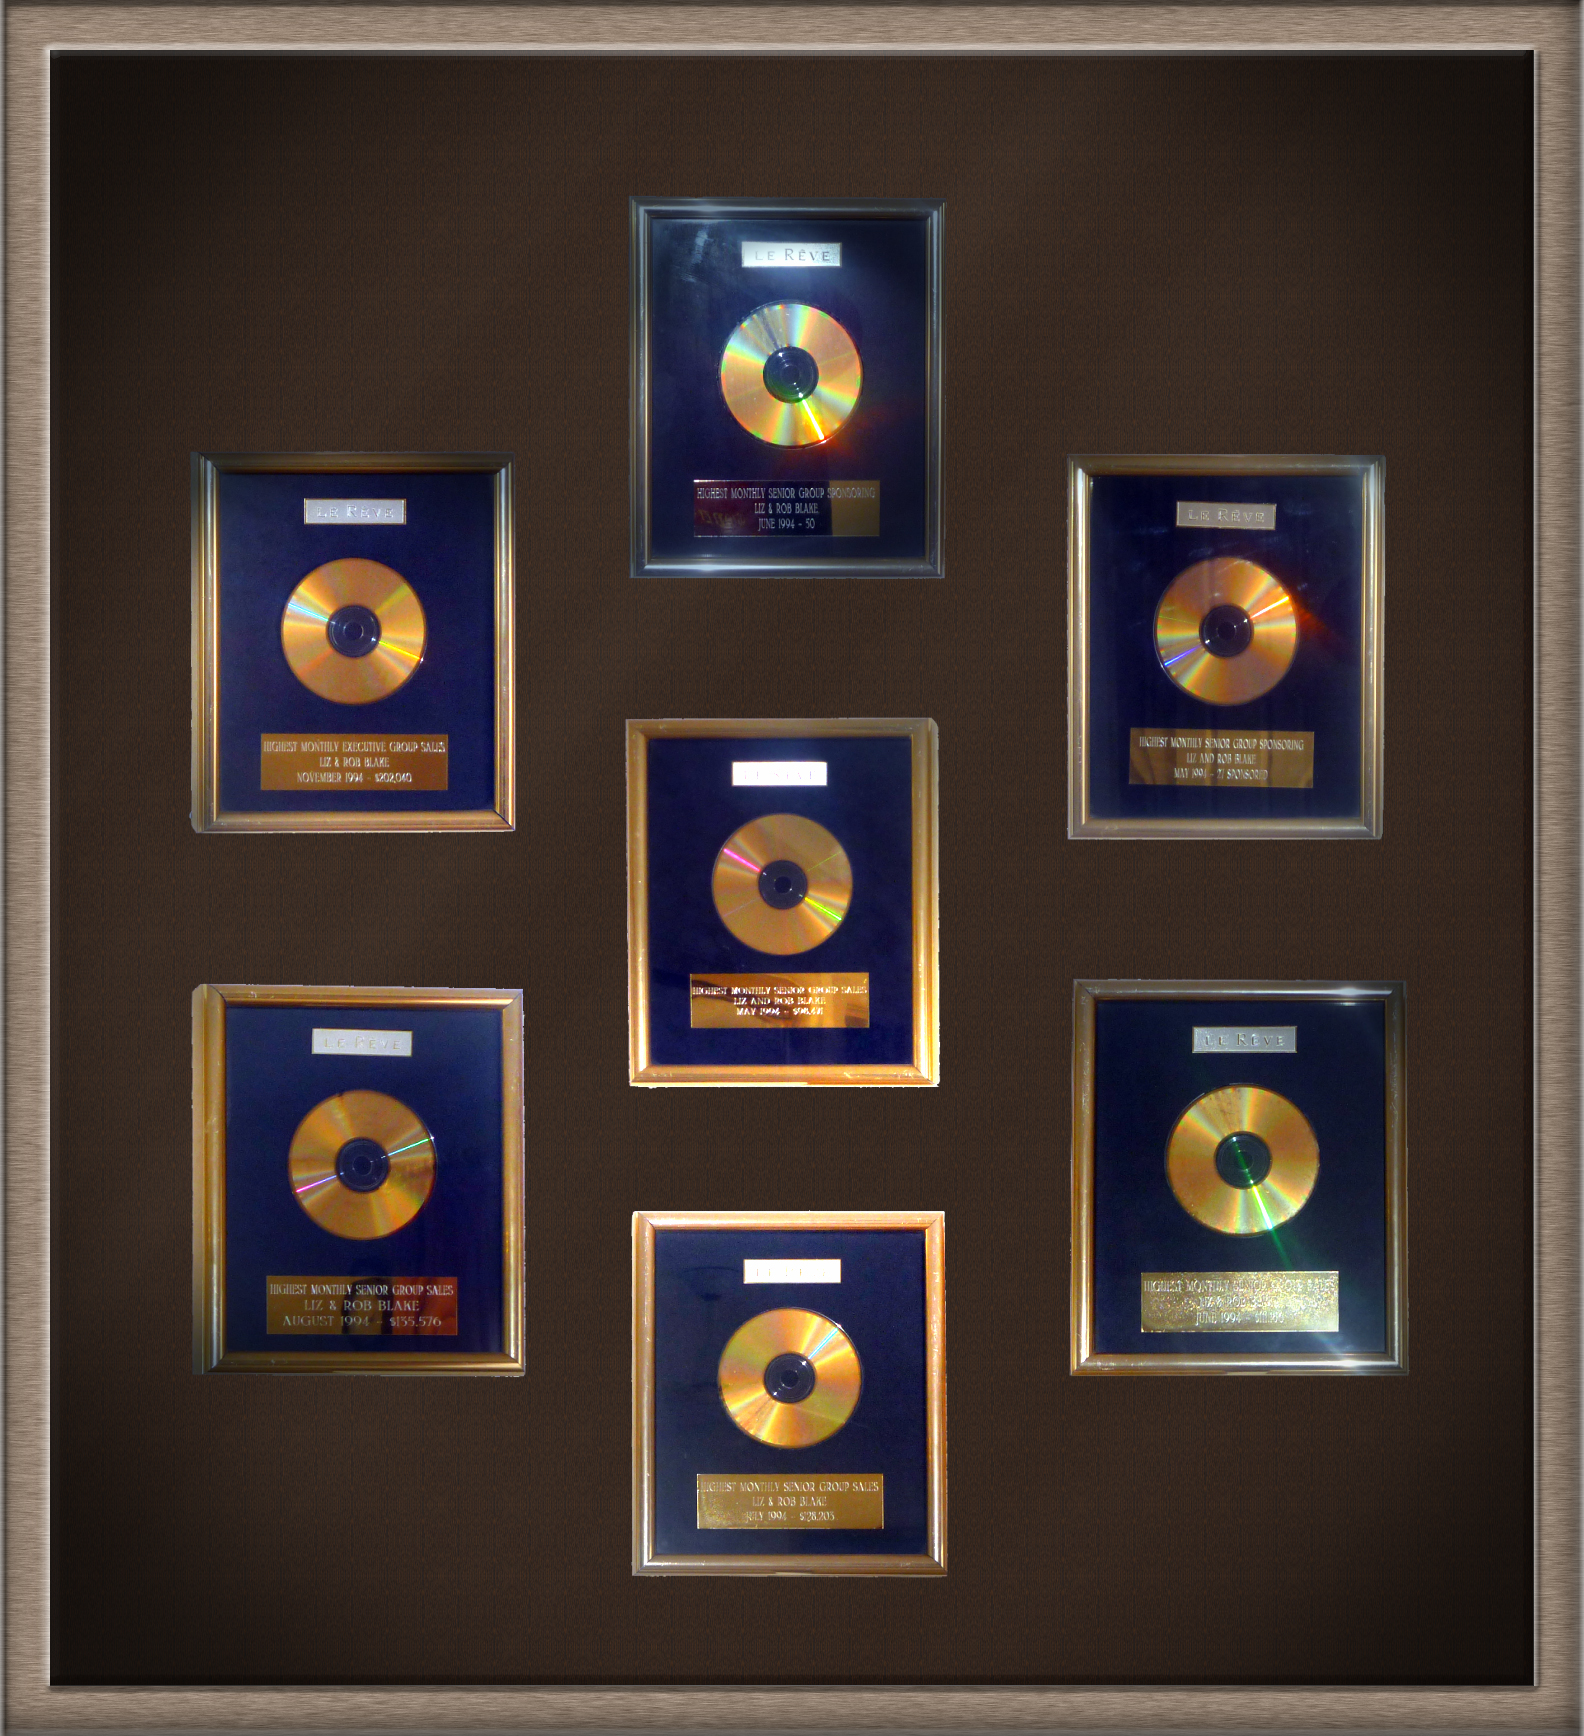 Gold records on Personal & Team Performance